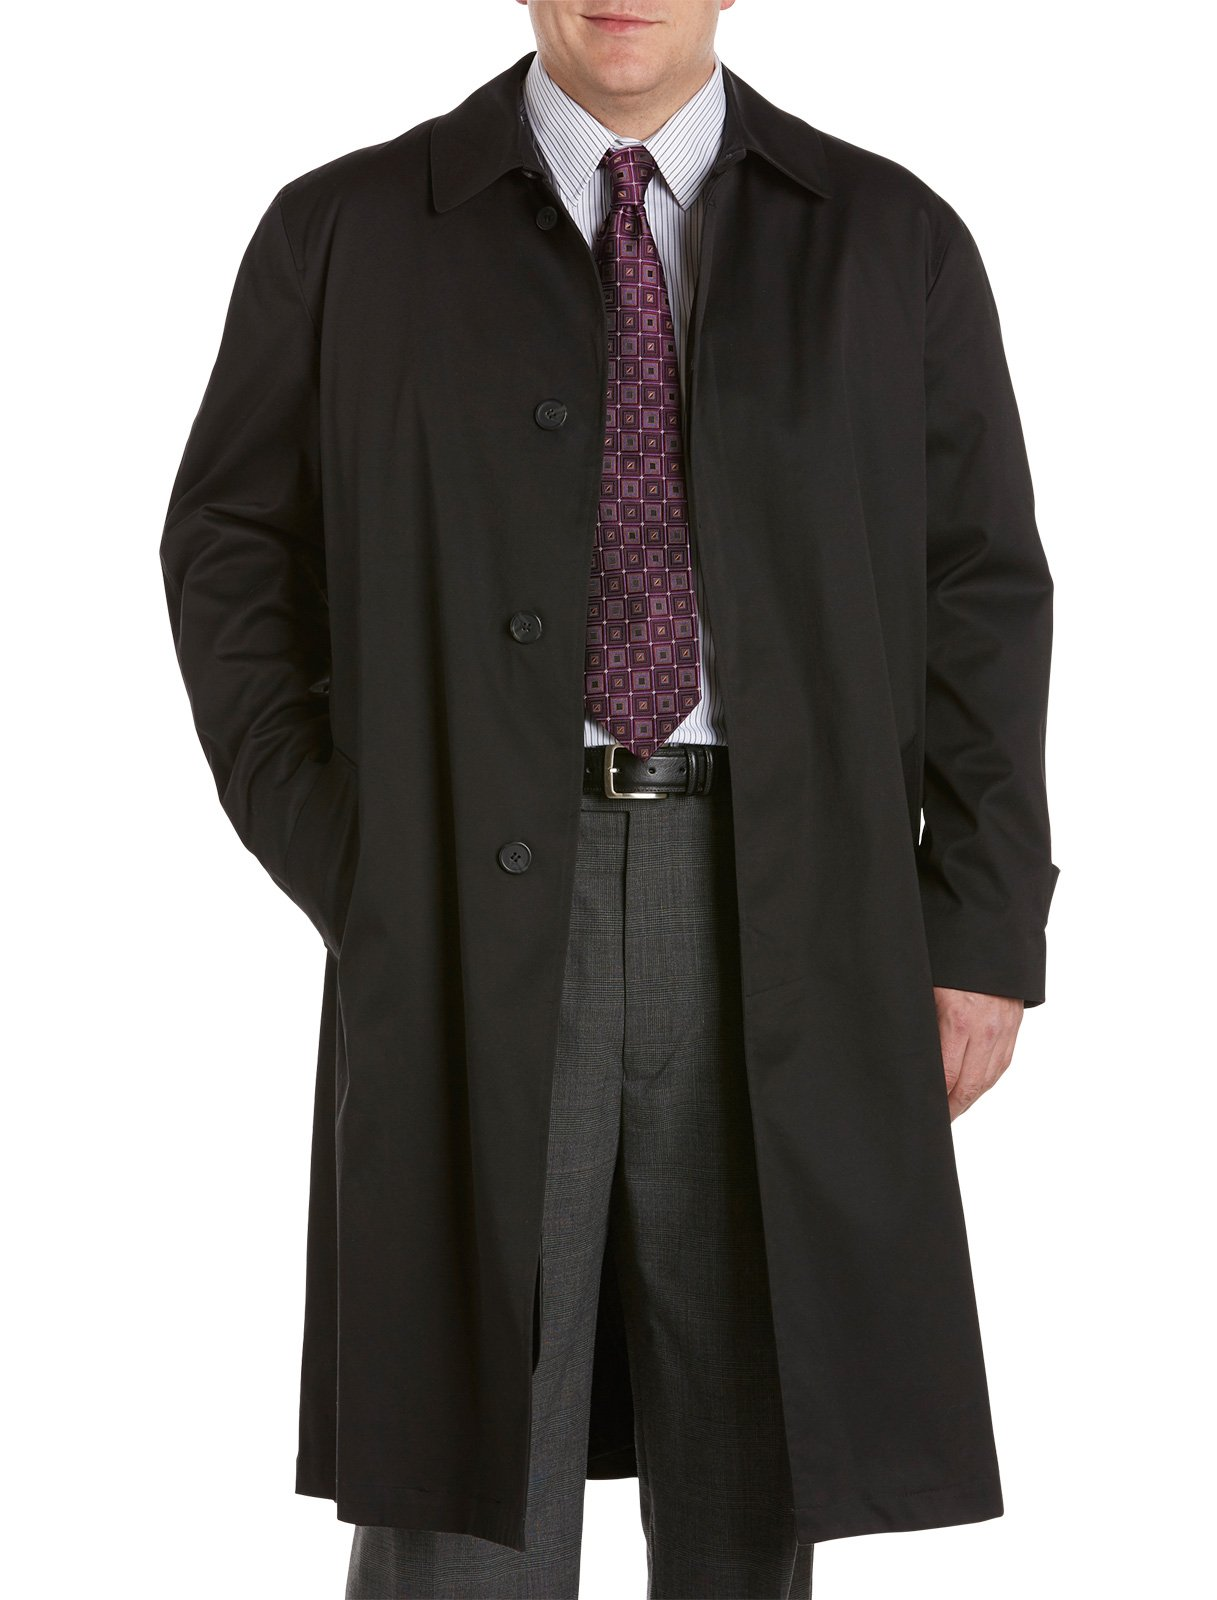 Jean Paul Germain Big & Tall Buster Three-Season Overcoat (54 Reg, Black)